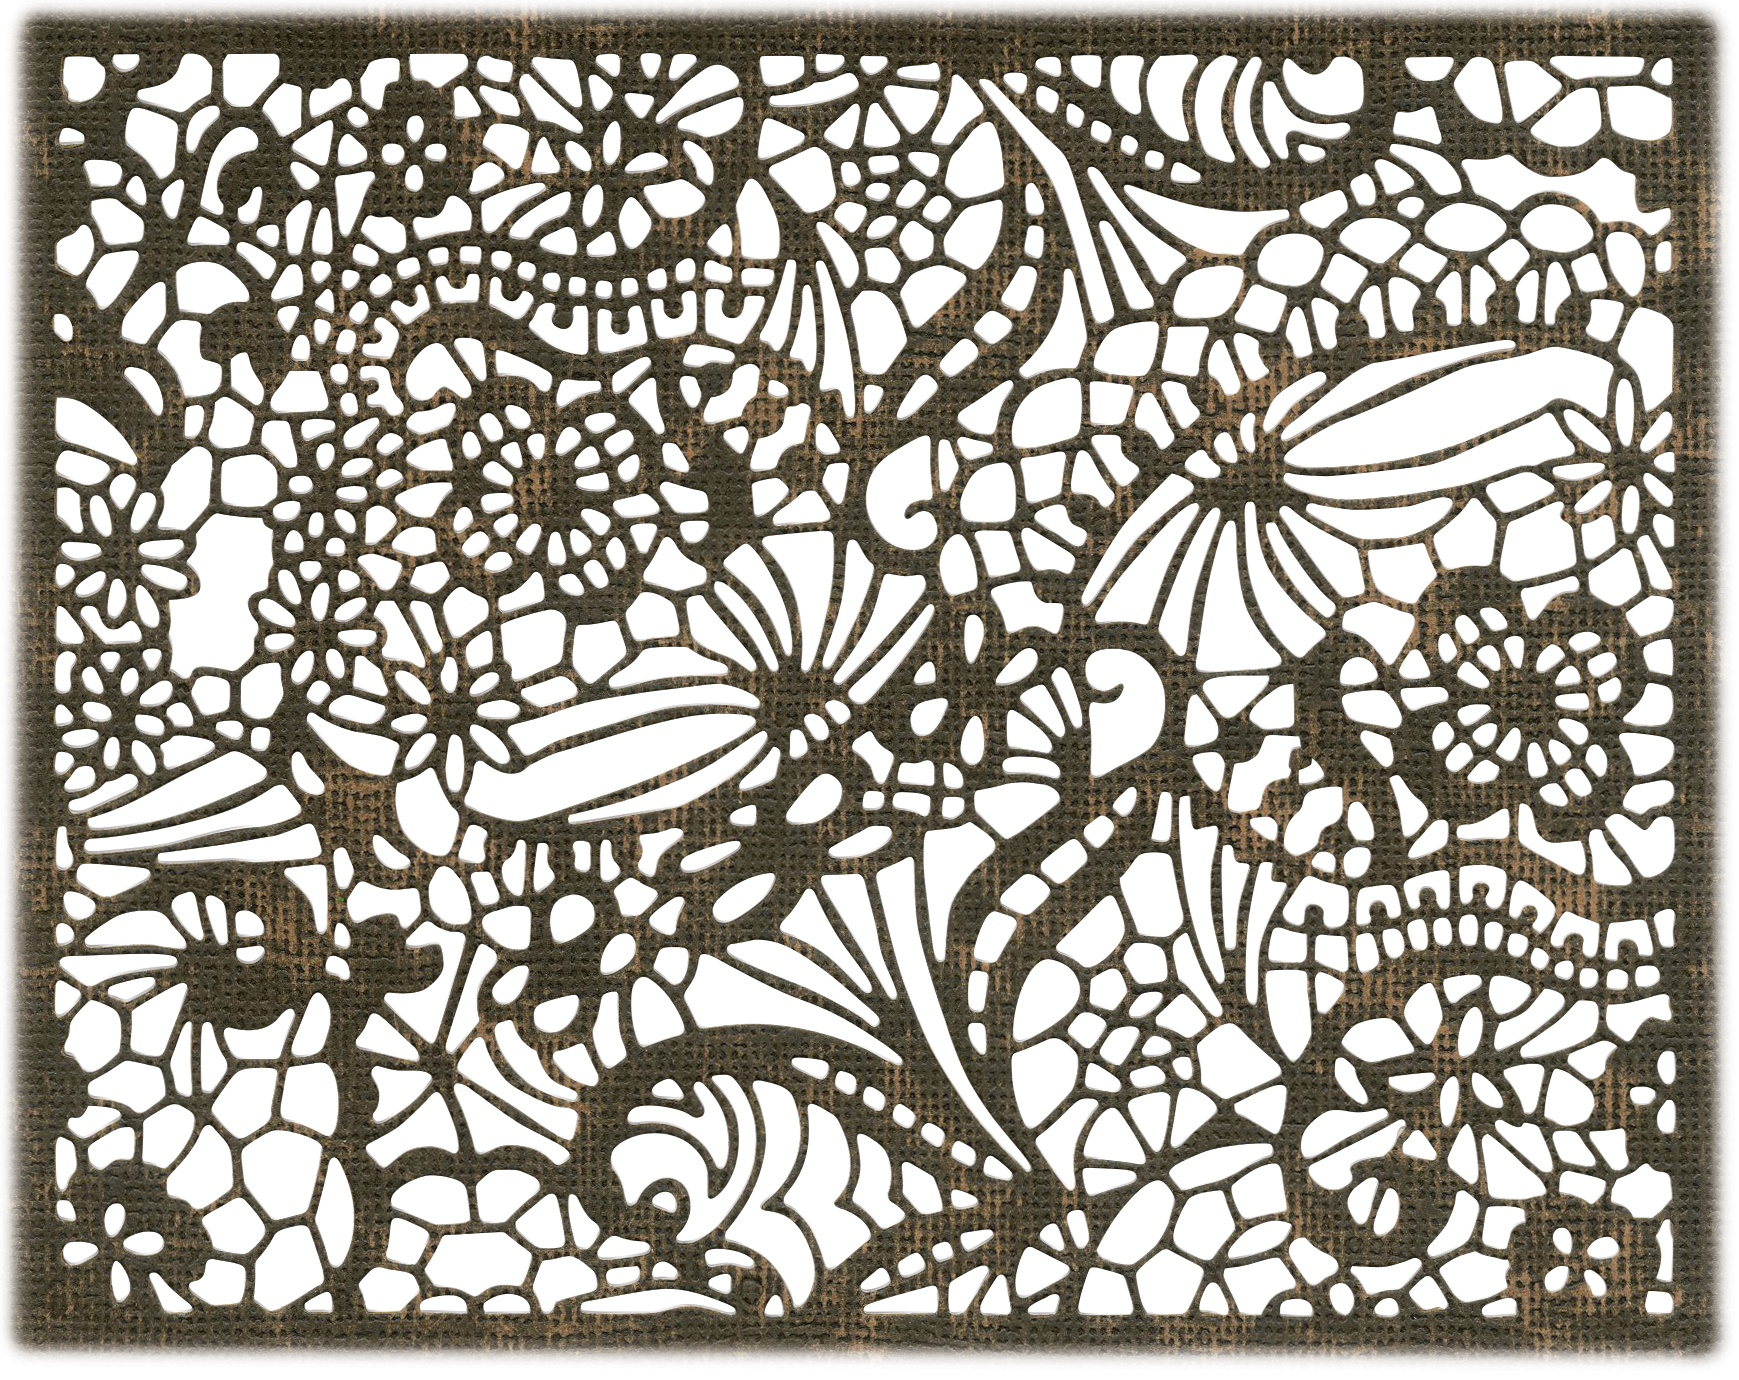 Intricate Lace Die